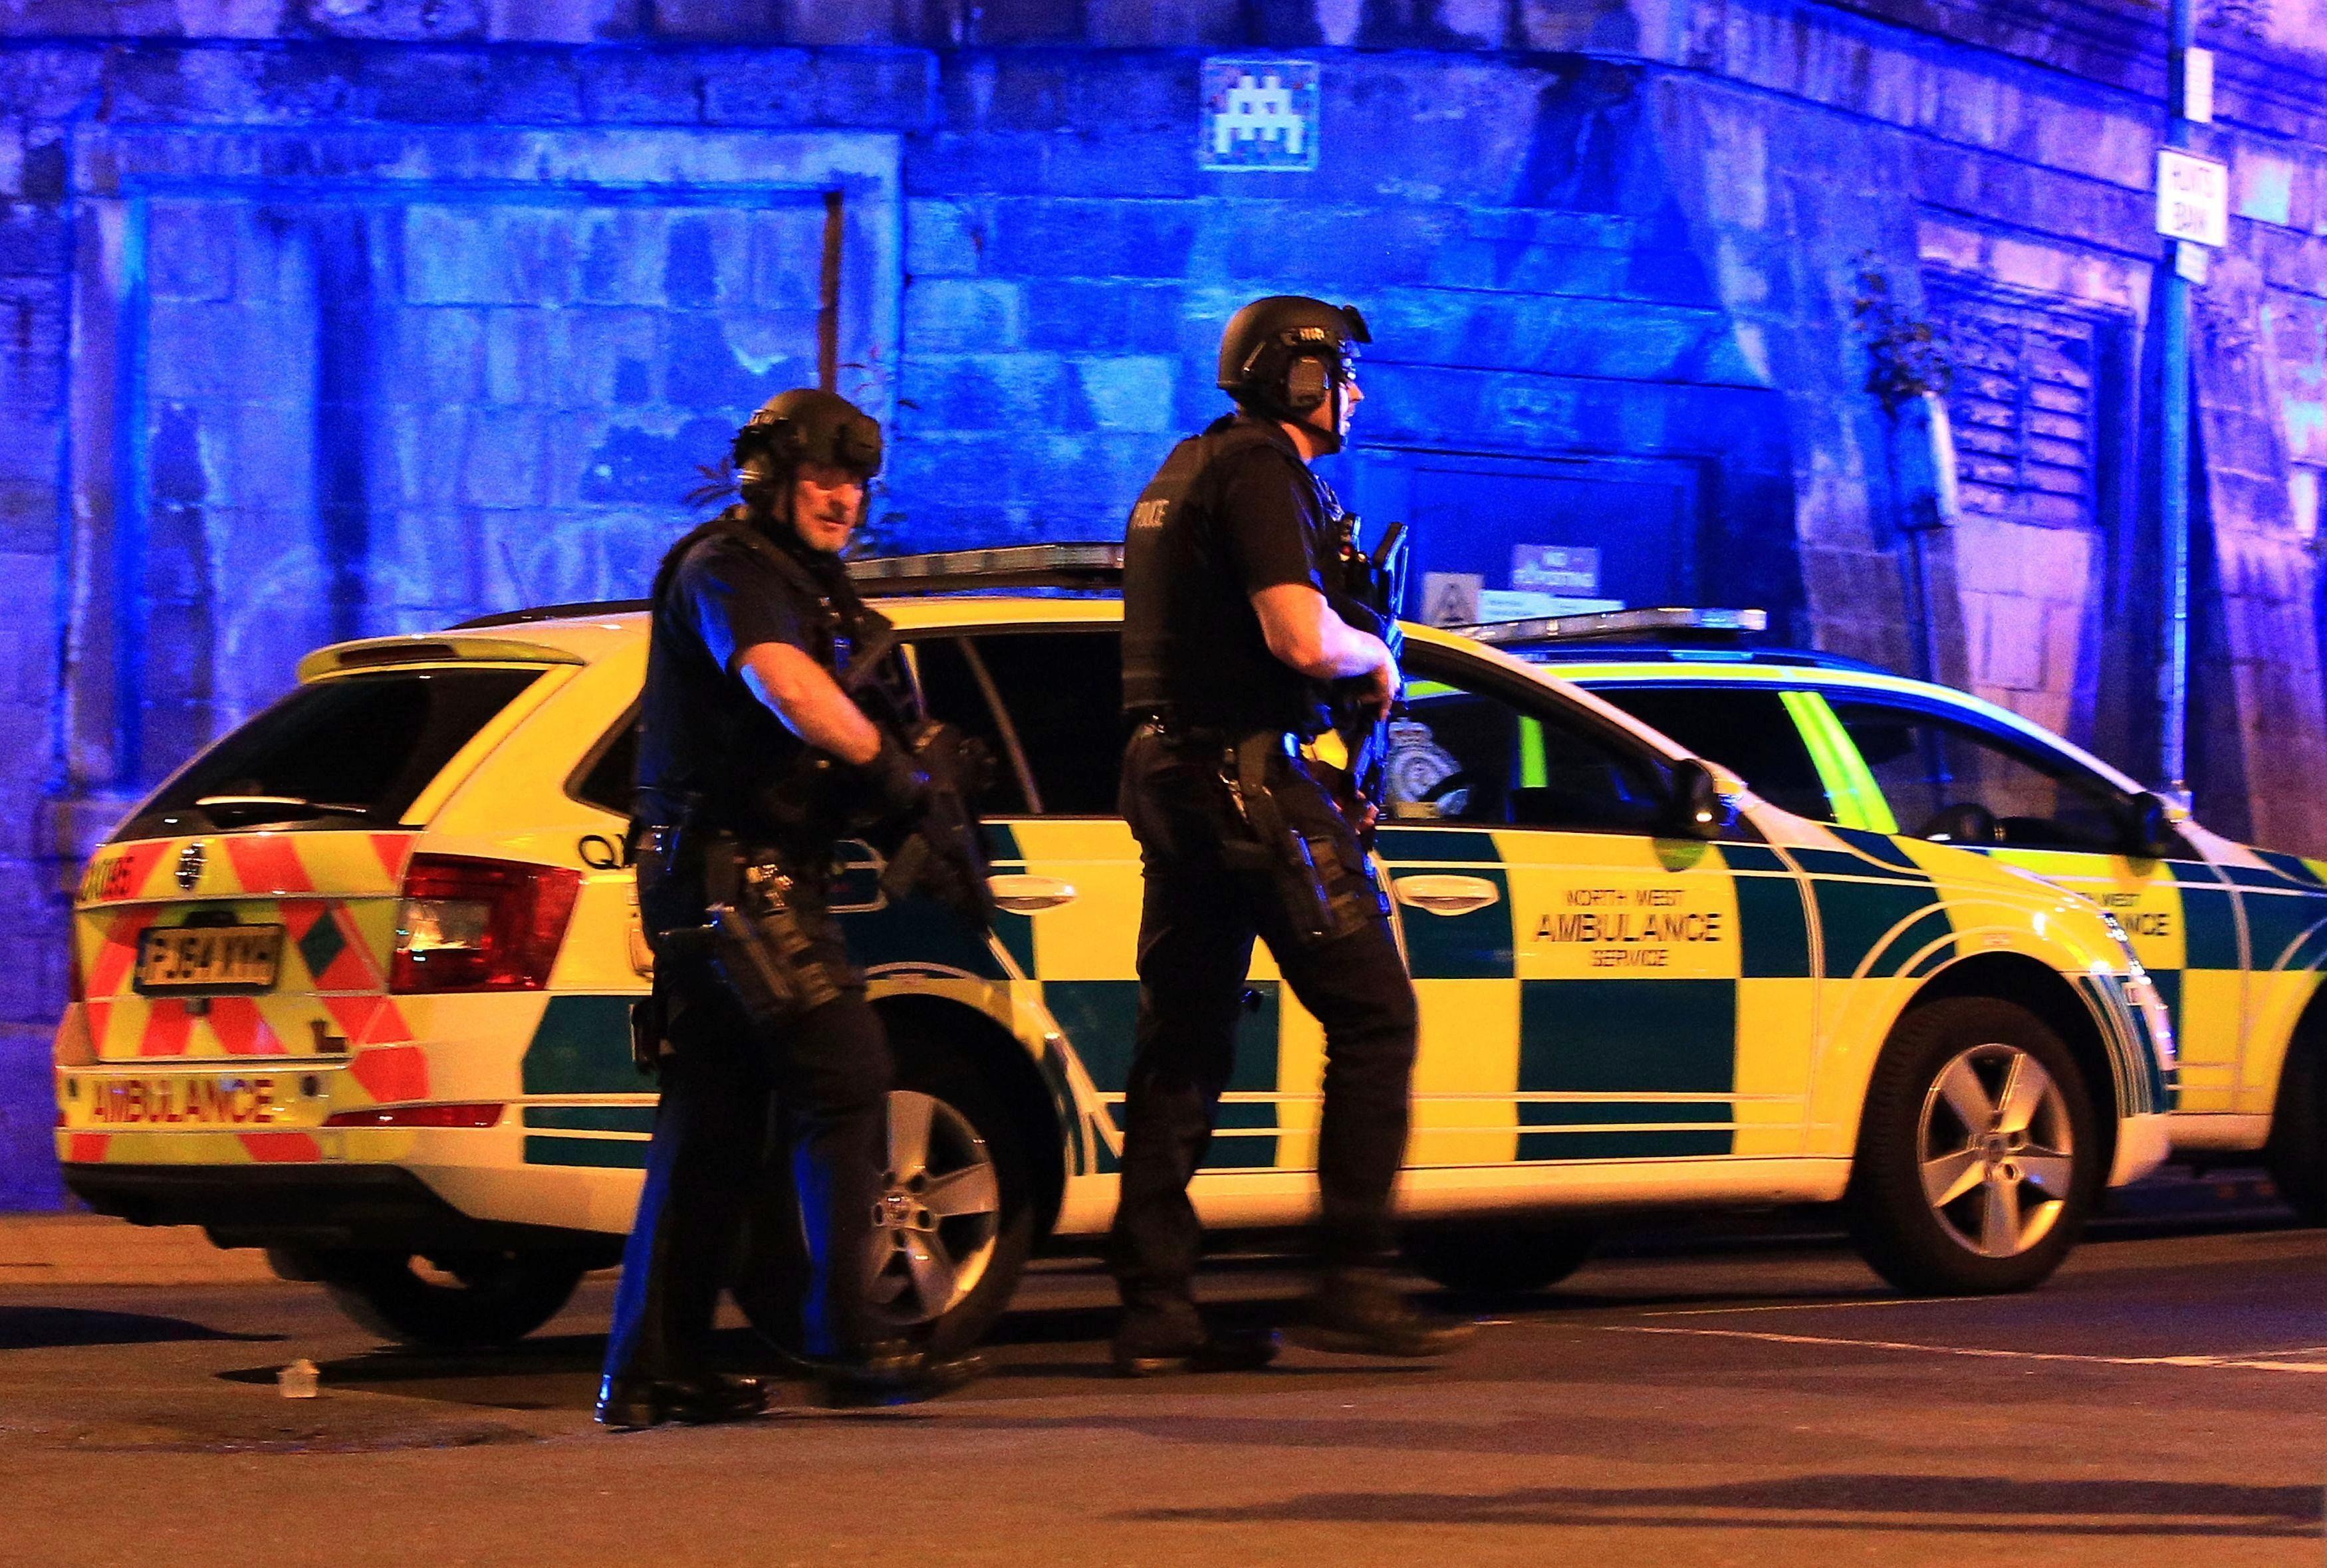 Armed police work at Manchester Arena after reports of an explosion at the venue during an Ariana Grande gig in Manchester, England Monday, May 22, 2017. (Peter Byrne/PA via AP)